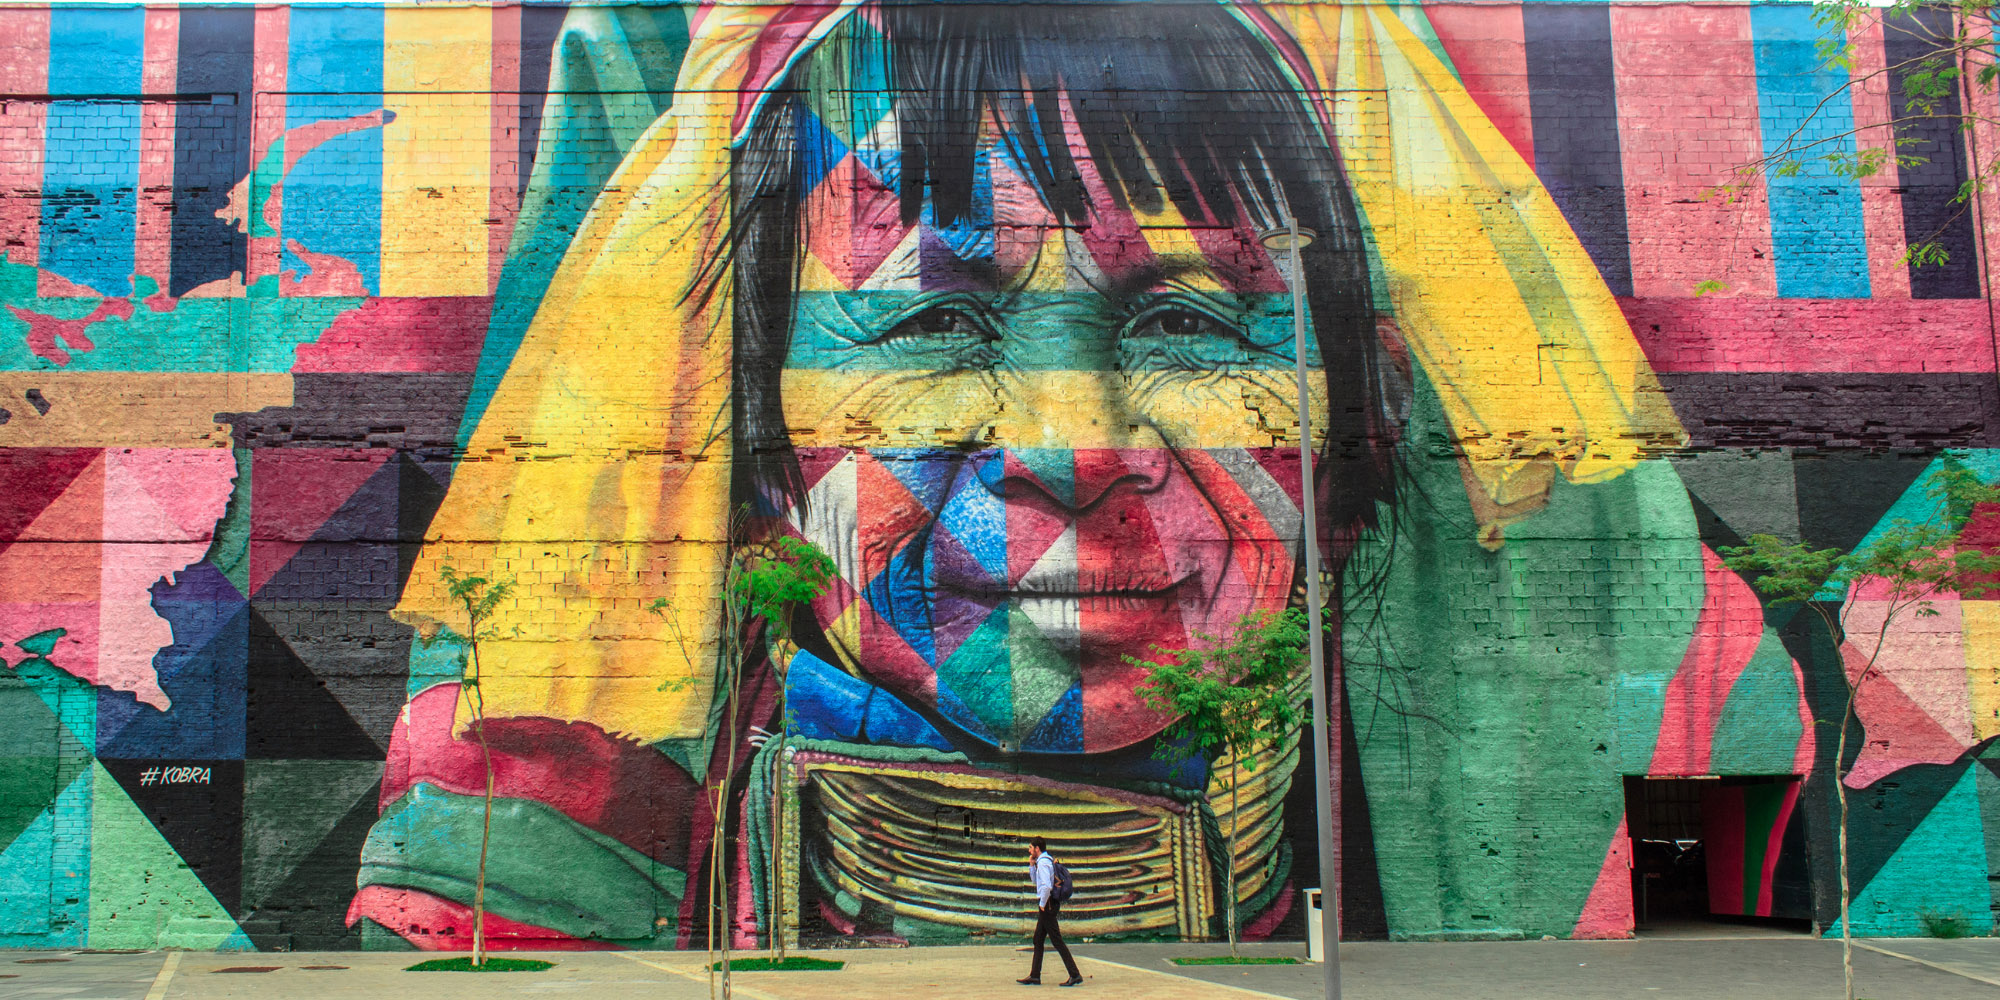 Street art image of a person painted with many colors